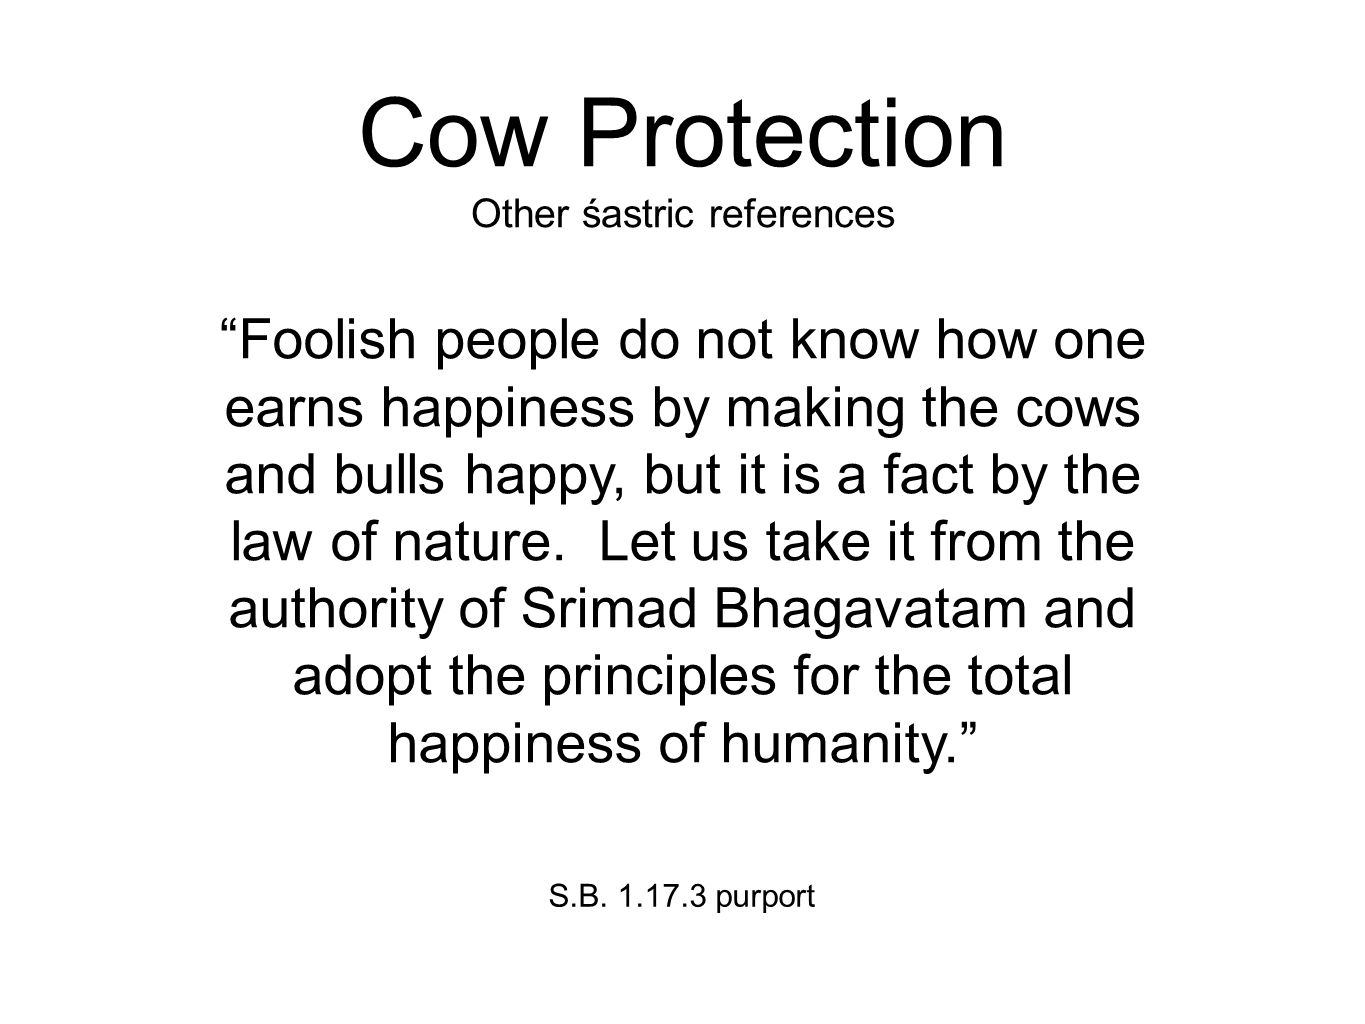 Cow Protection Other śastric references Foolish people do not know how one earns happiness by making the cows and bulls happy, but it is a fact by the law of nature.